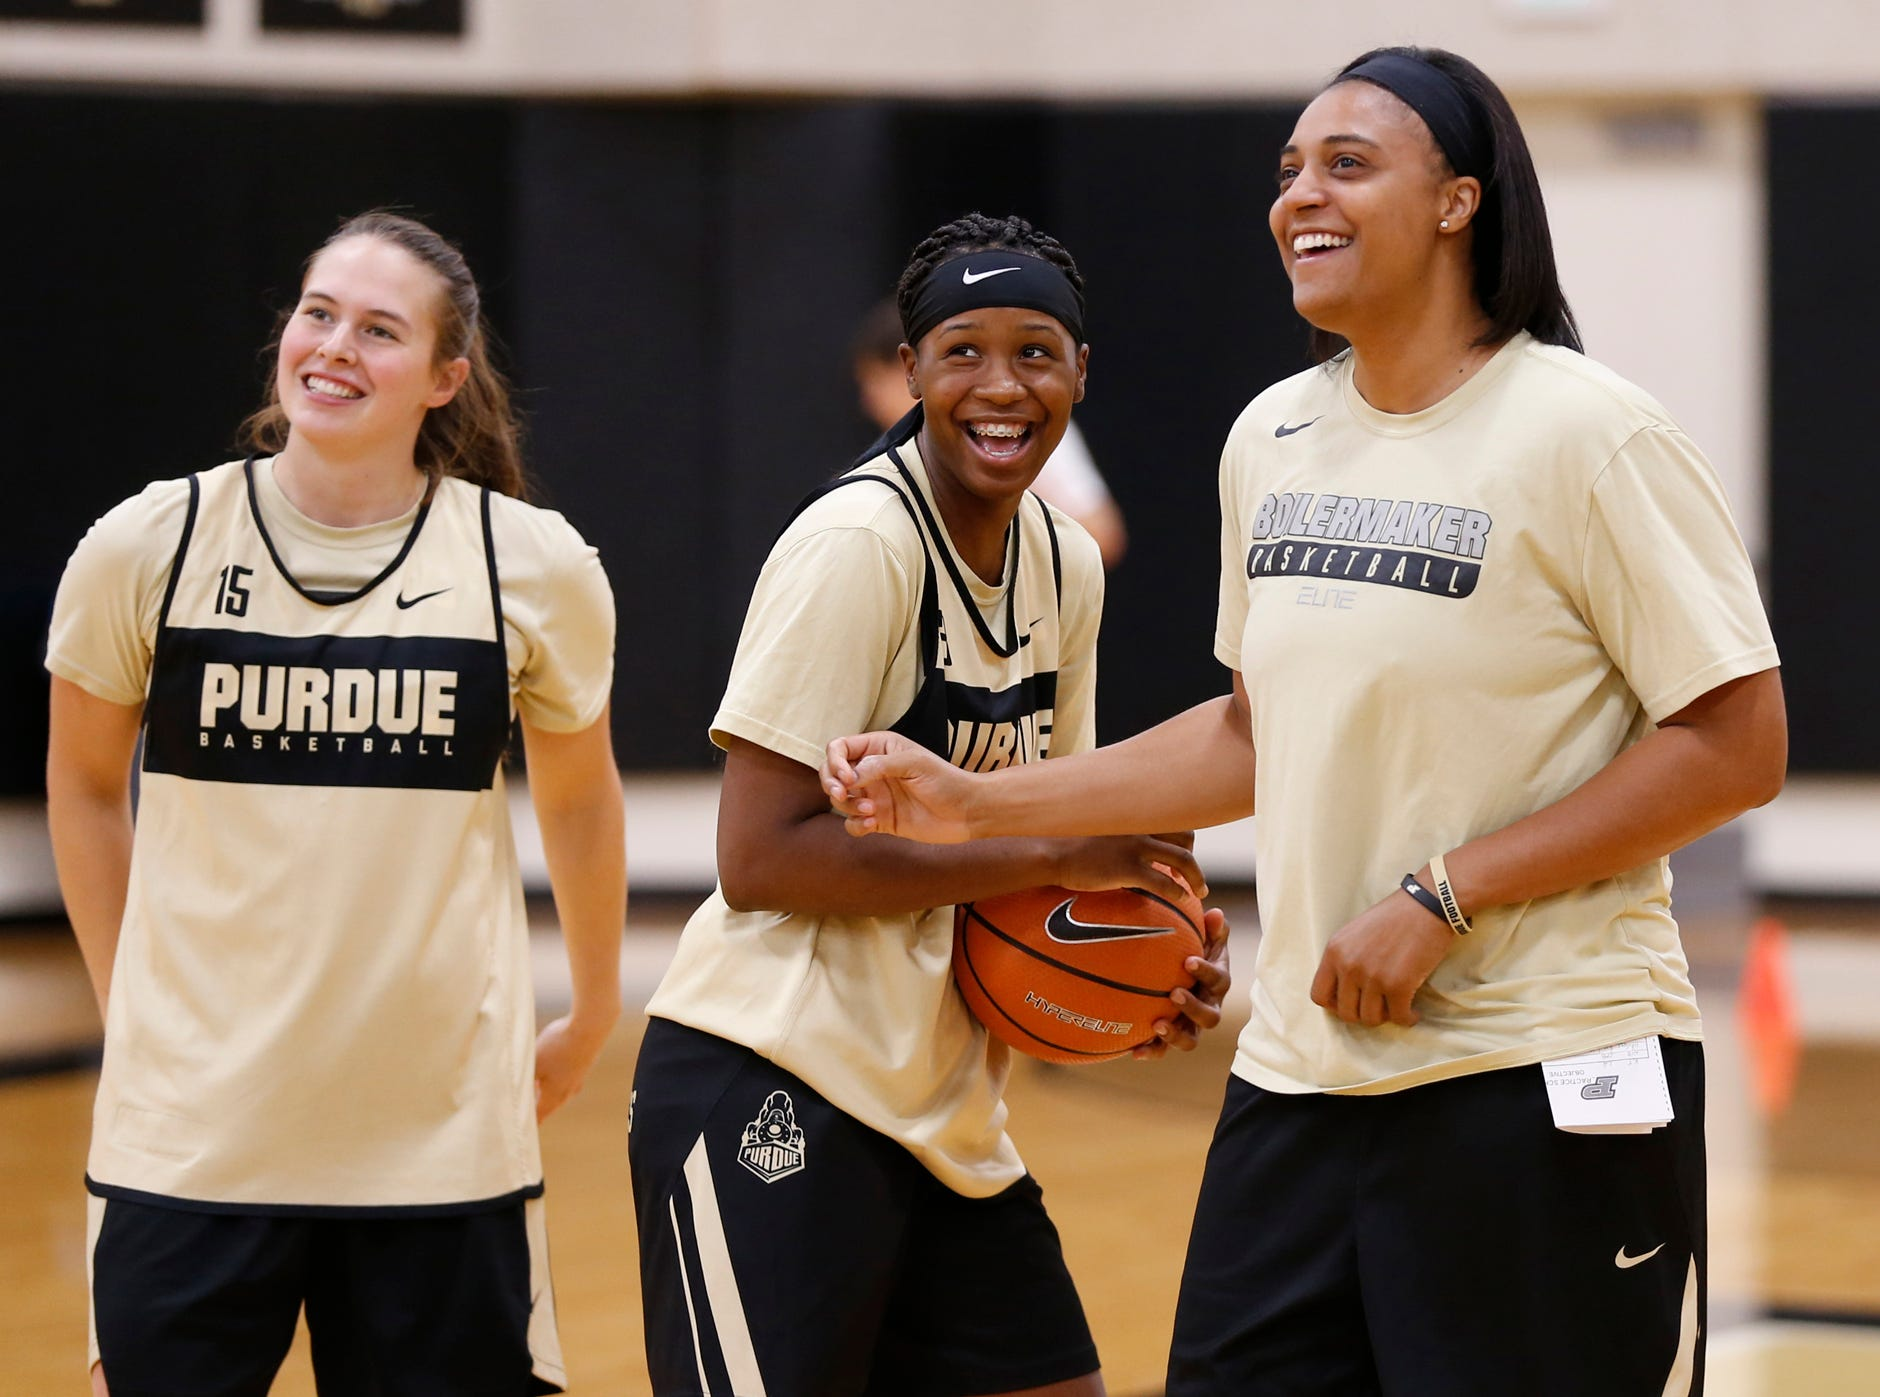 Assistant coach Lindsay Wisdom-Hylton, right, shares a laugh with Lyndsey Whilby, center, and Léony Boudreau at Purdue women's basketball practice Wednesday, September 26, 2018, at Cardinal Court in Mackey Arena.